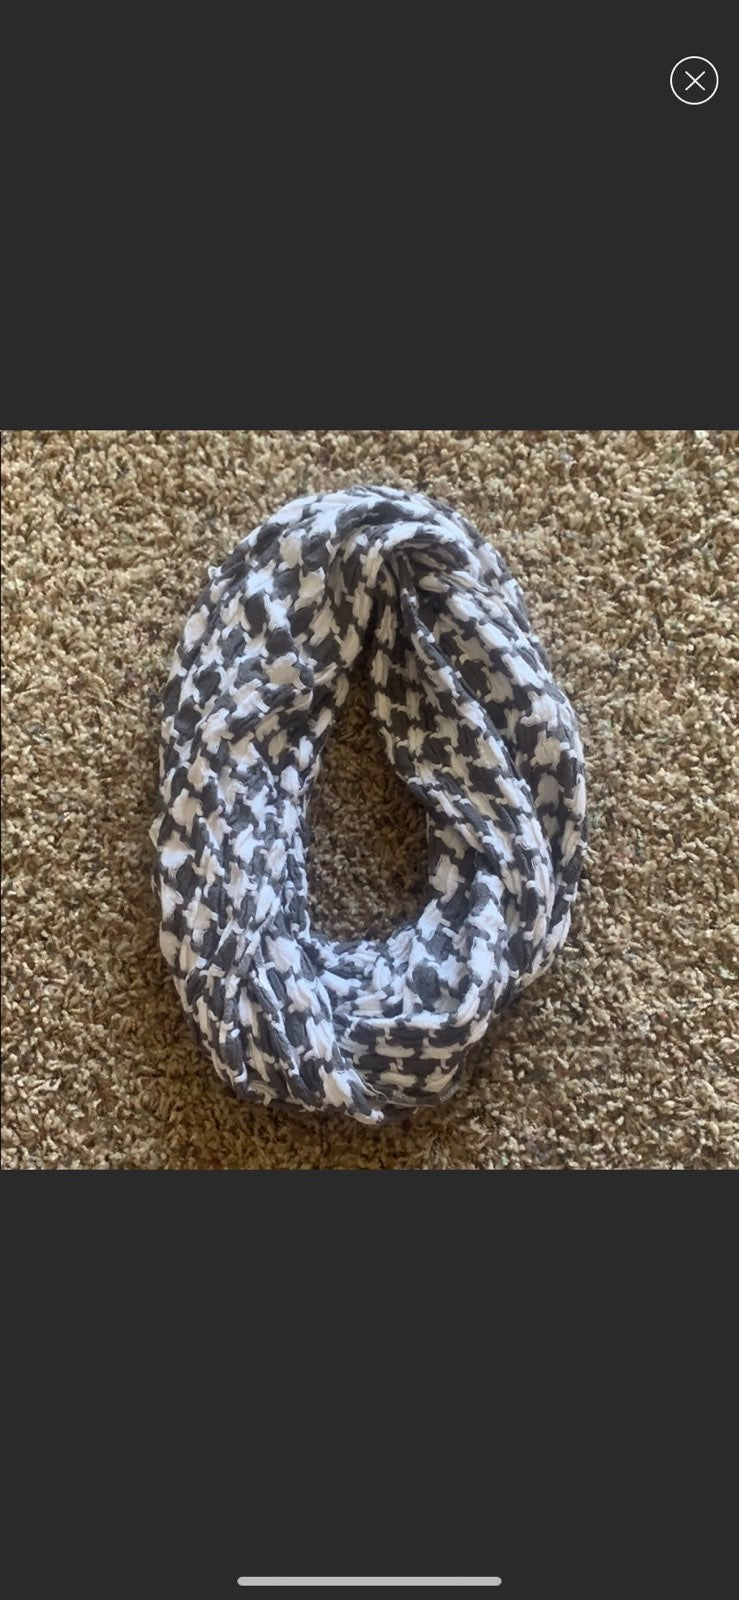 Candie's Infinity Scarf - grey and white